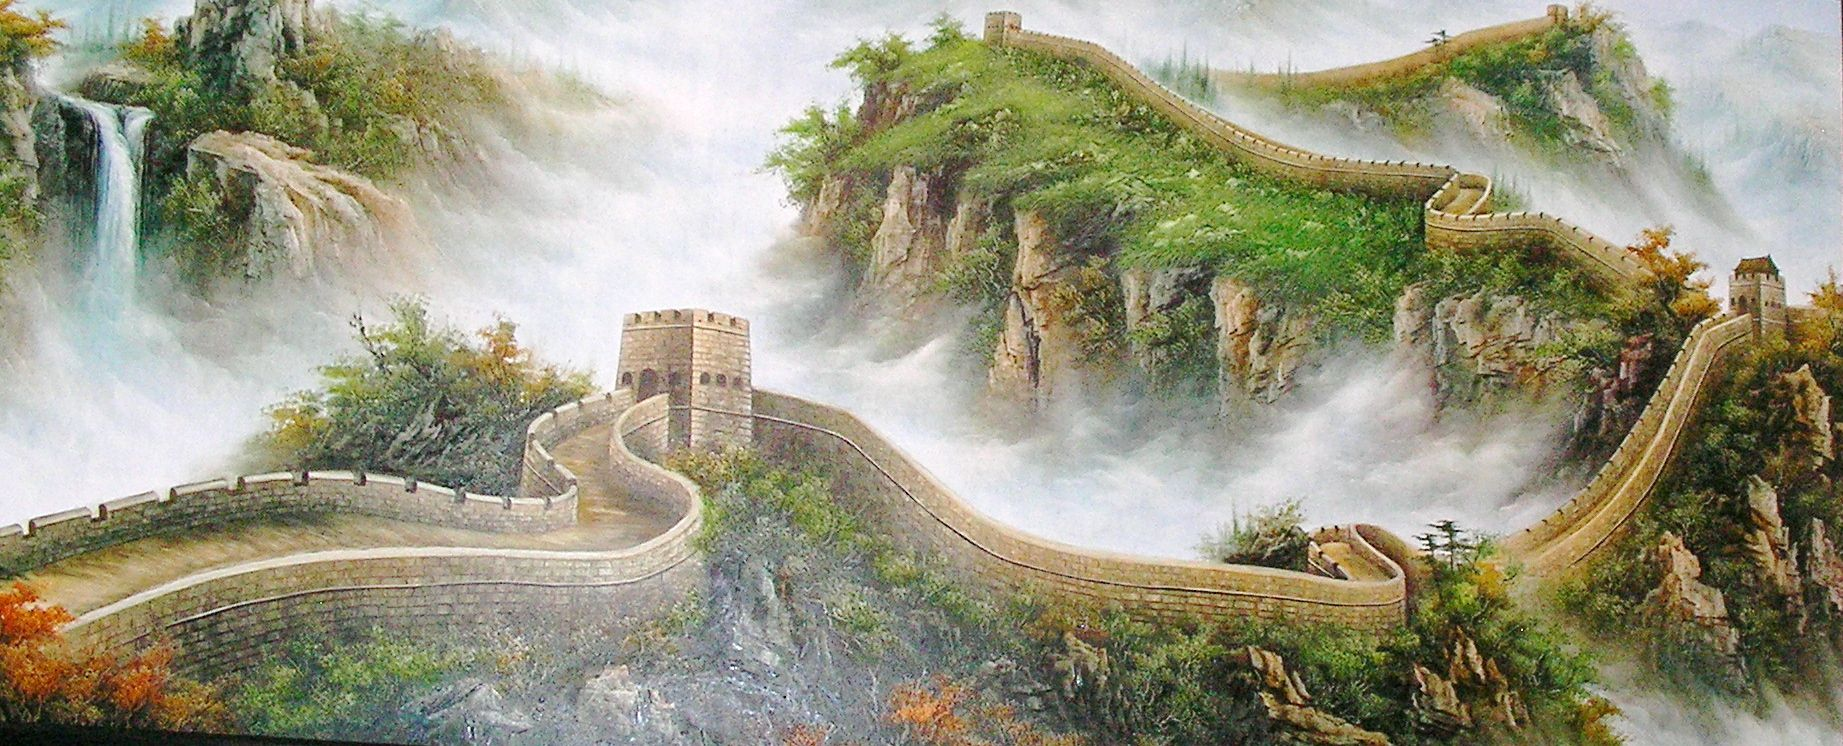 great wall of china painting พ นหล ง ภาพวาด on great wall of china id=84646